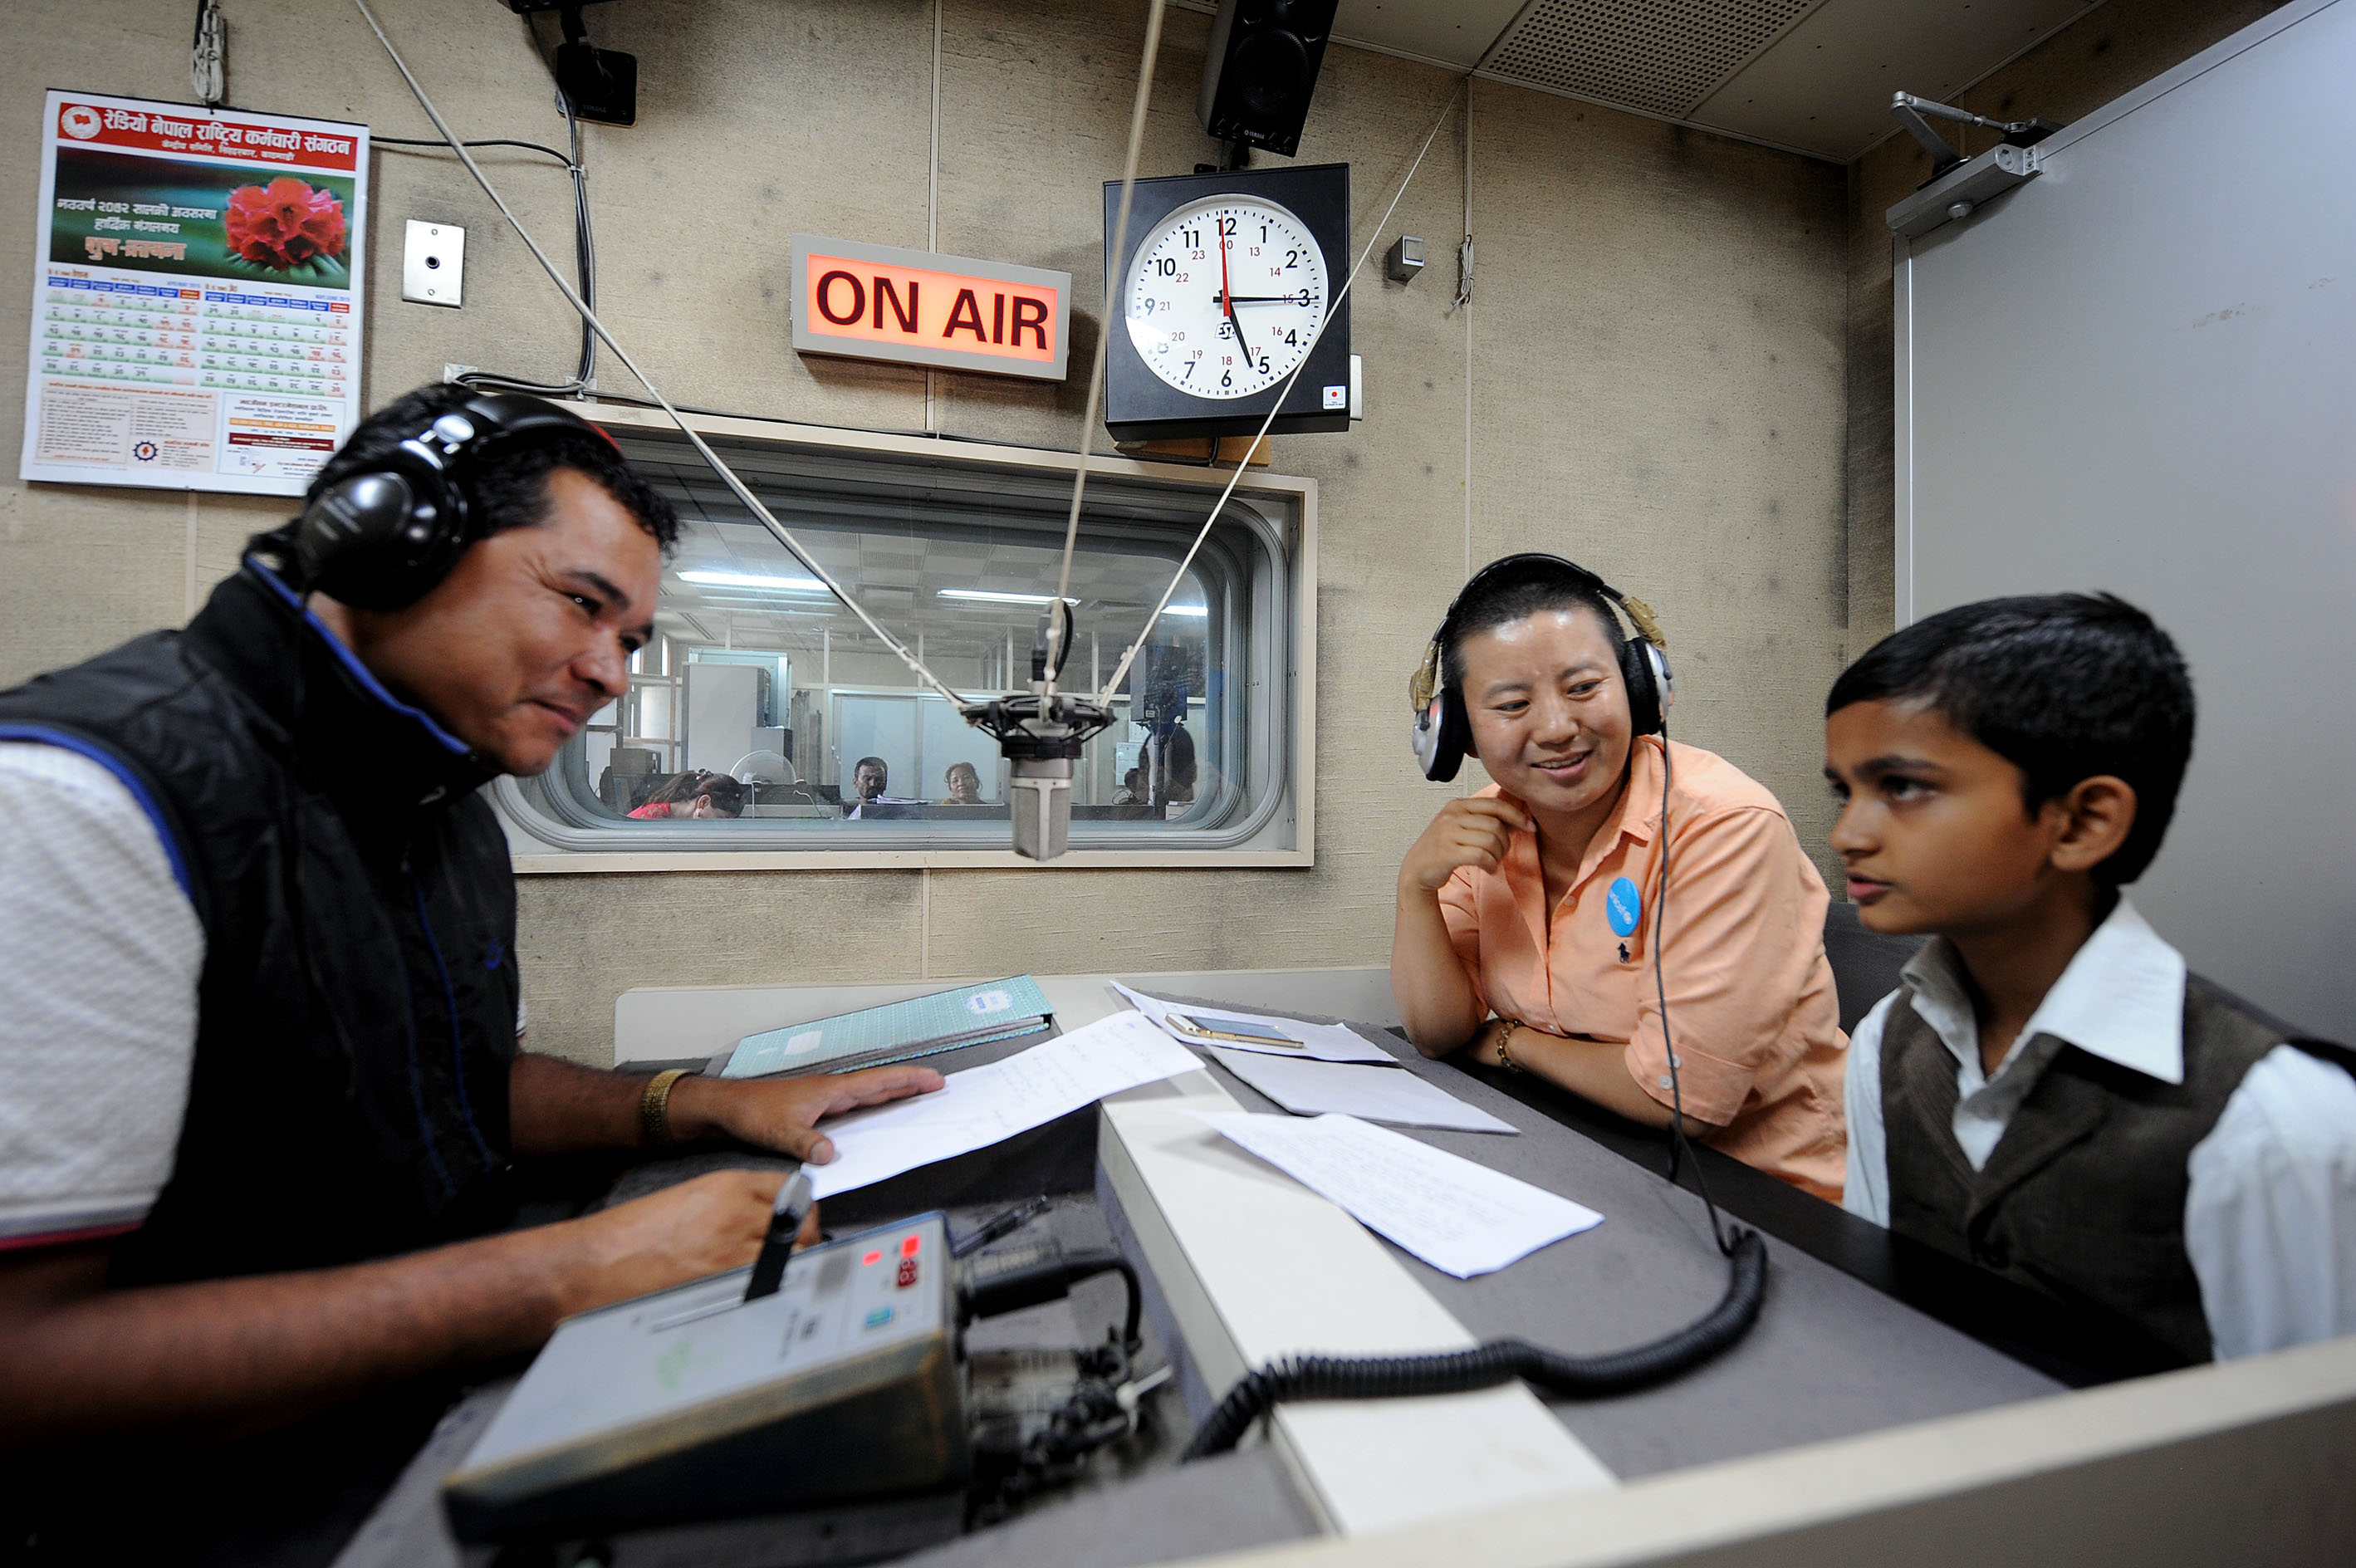 UNICEF Nepal National Ambassador Ani Choying Drolma (center) and radio anchor Ram Abiral (left) interact with child guest Subhakar Chaulagain (right) during live programming of Bhandai Sundai radio programme. Photo by Chandra Shekhar for UNICEF.